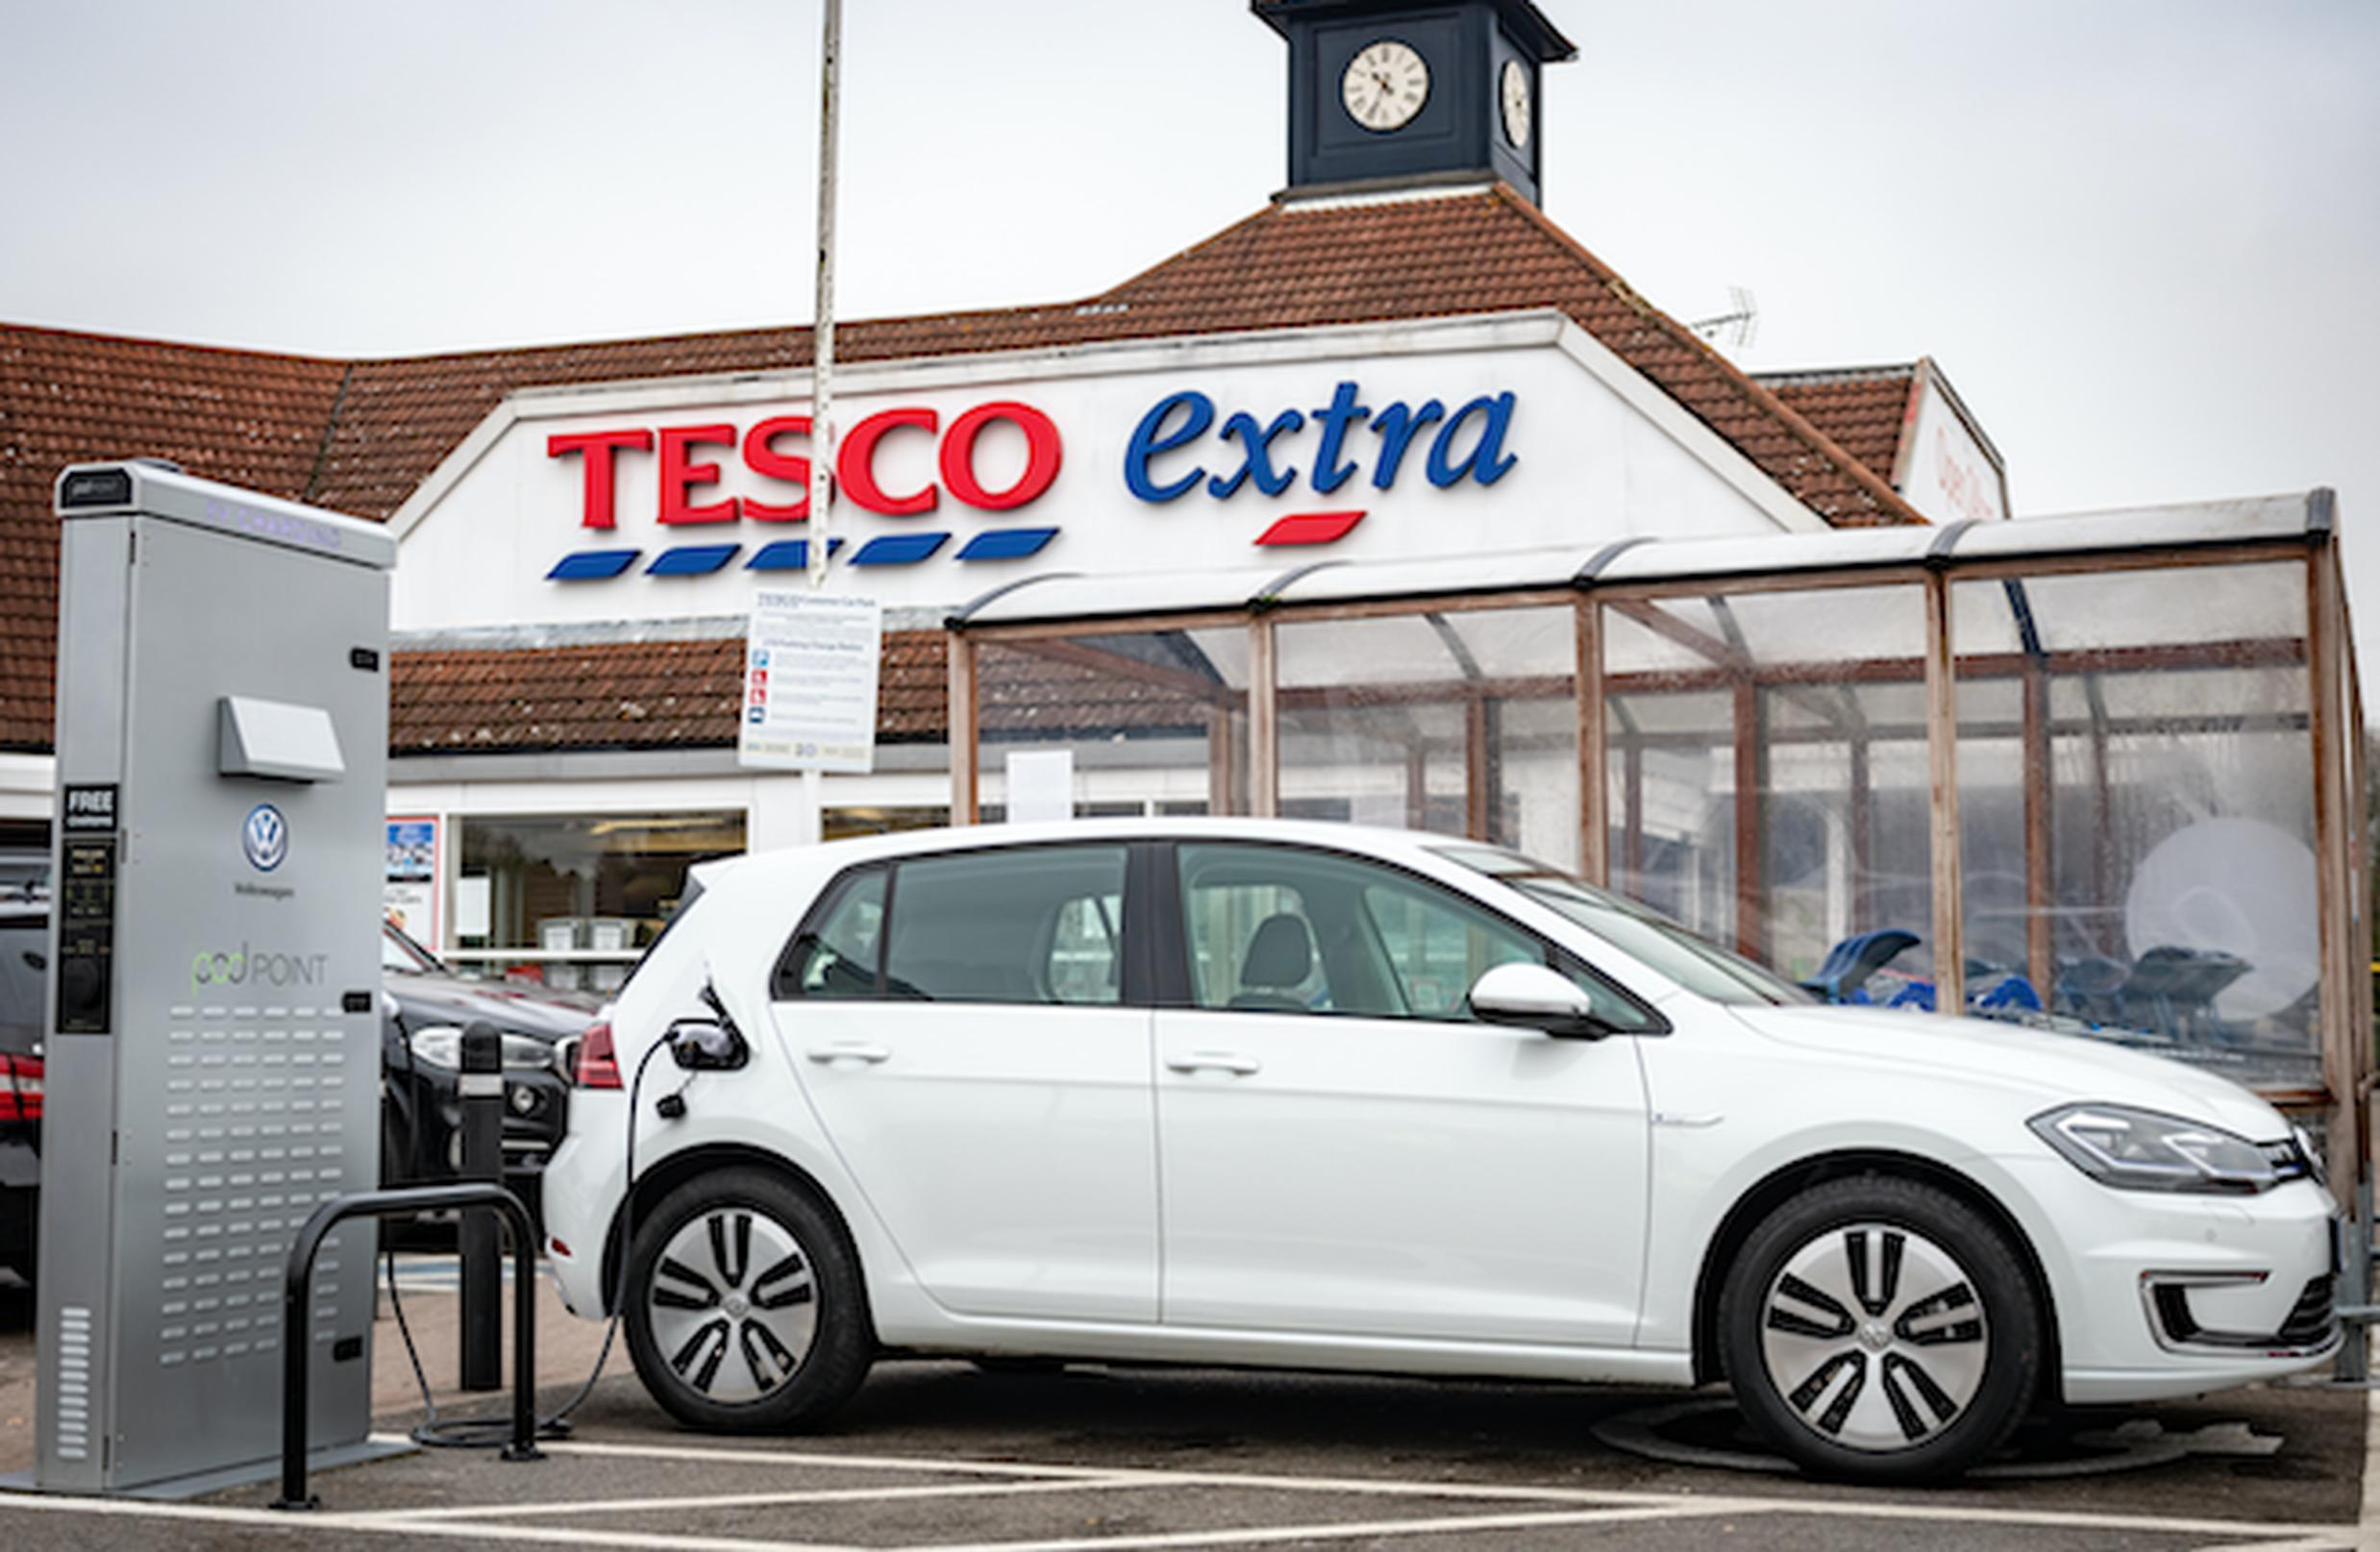 VW charging bays will be installed at around 600 Tesco Extra and Superstore car parks